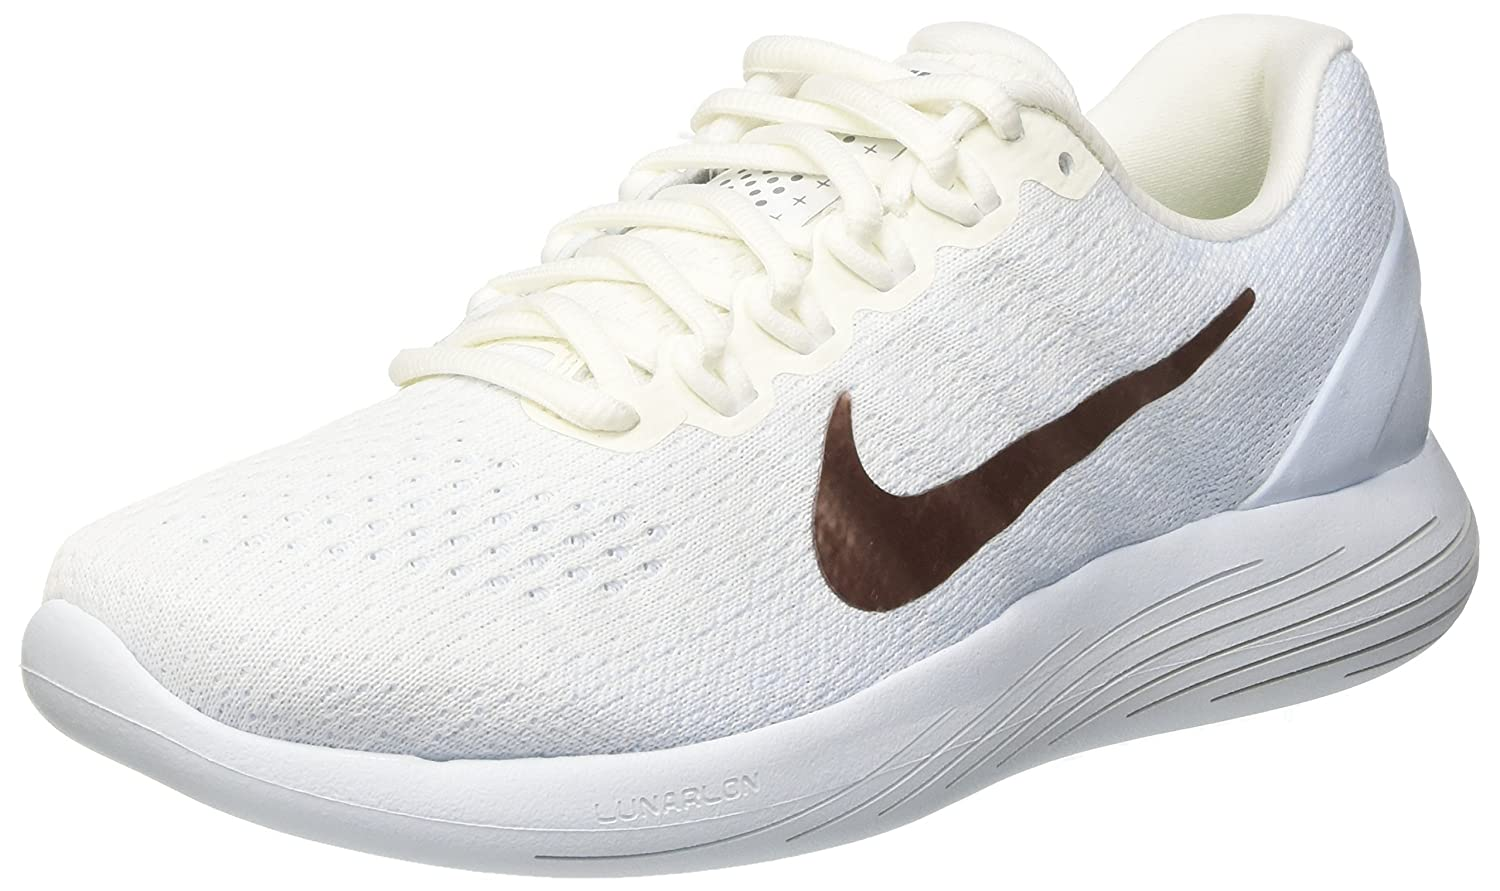 NIKE Women's Lunarglide 9 Running Shoe B073D7P5W6 6 B(M) US|Summit White/Mtlc Red Bronze